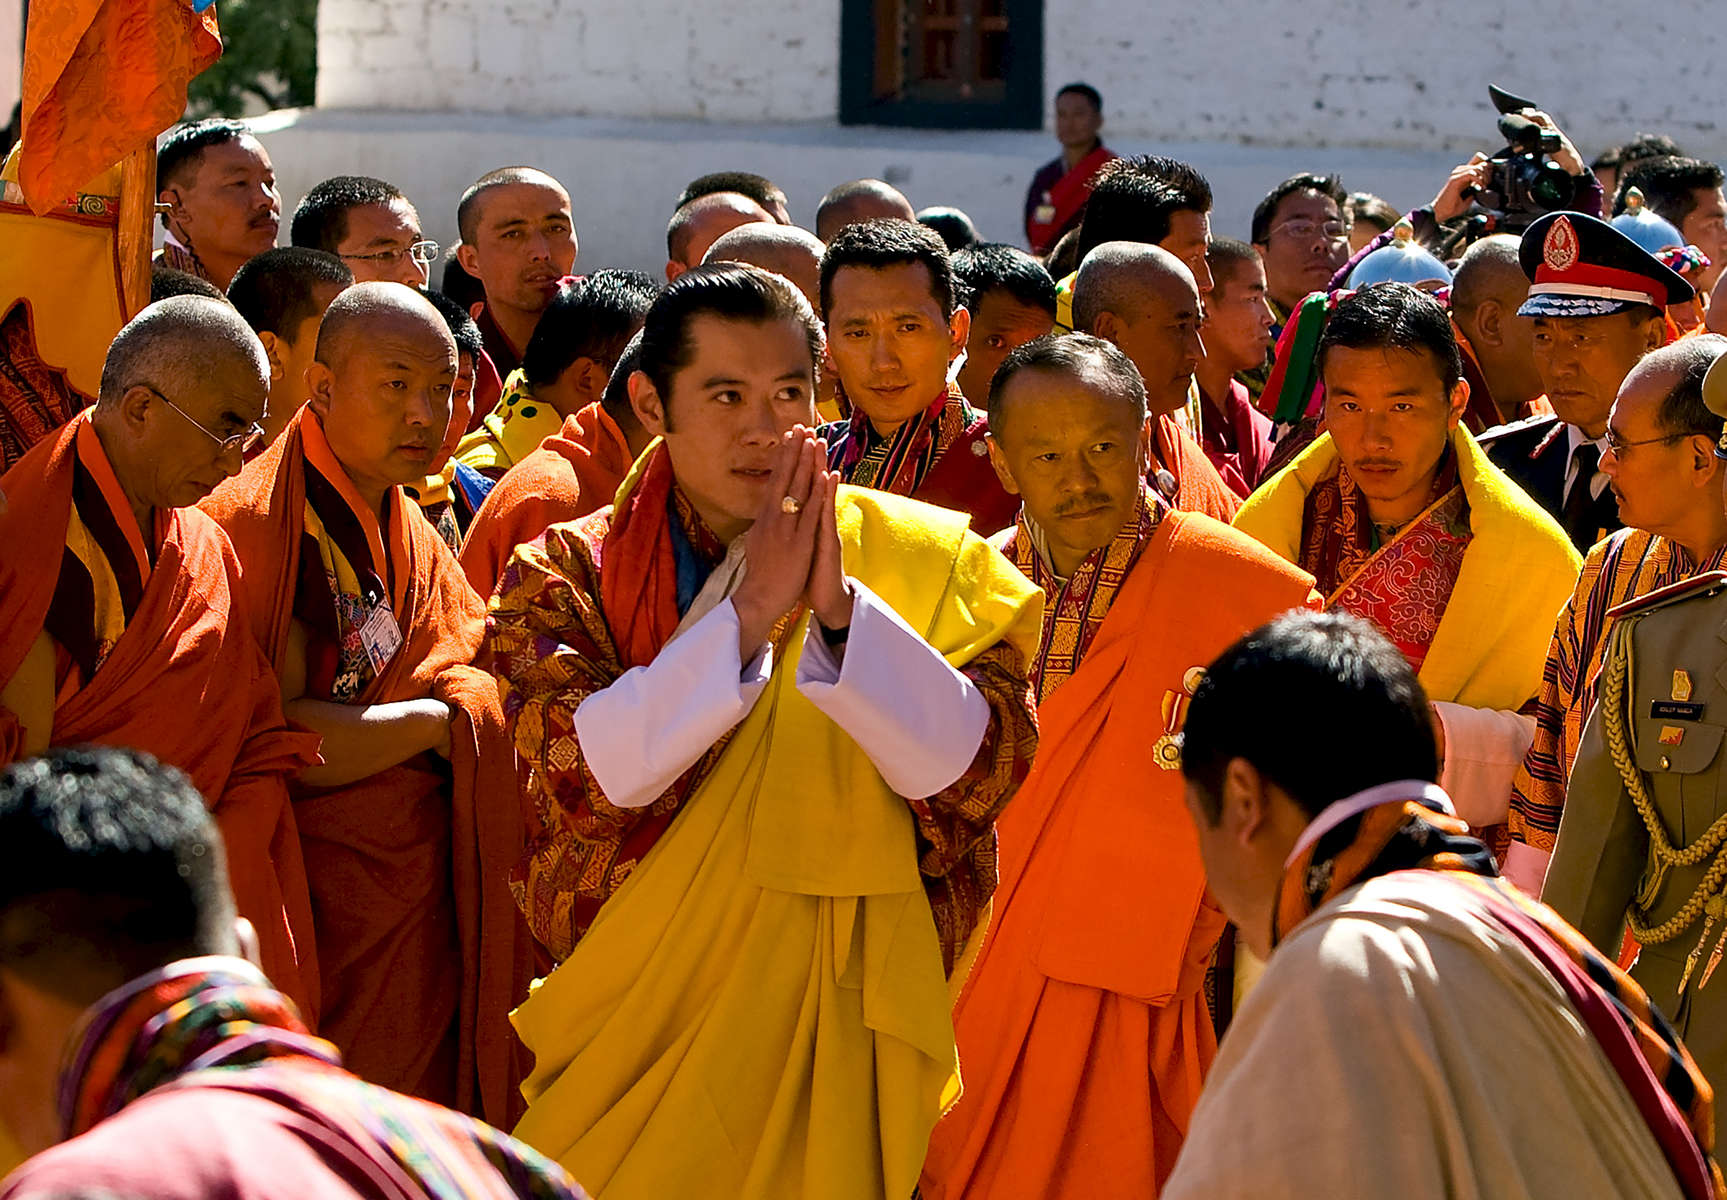 THIMPHU, BHUTAN -NOV 6, 2008: His Majesty Jigme Khesar Namgyel Wangchuck, 28,  arrives at the Dratshang Kuenra Tashichho Dzong November 6, 2008 in Thimphu, Bhutan. The young Bhutanese king, an Oxford-educated bachelor became the youngest reigning monarch on the planet today. He was handed the Raven Crown by his father, the former King Jigme Singye Wangchuck, in an ornate ceremony in Thimpu, the capital. The tiny Himalayan kingdom, a Buddhist nation of 635,000 people is wedged between China and India .  (Photo by Paula Bronstein/Getty Images)